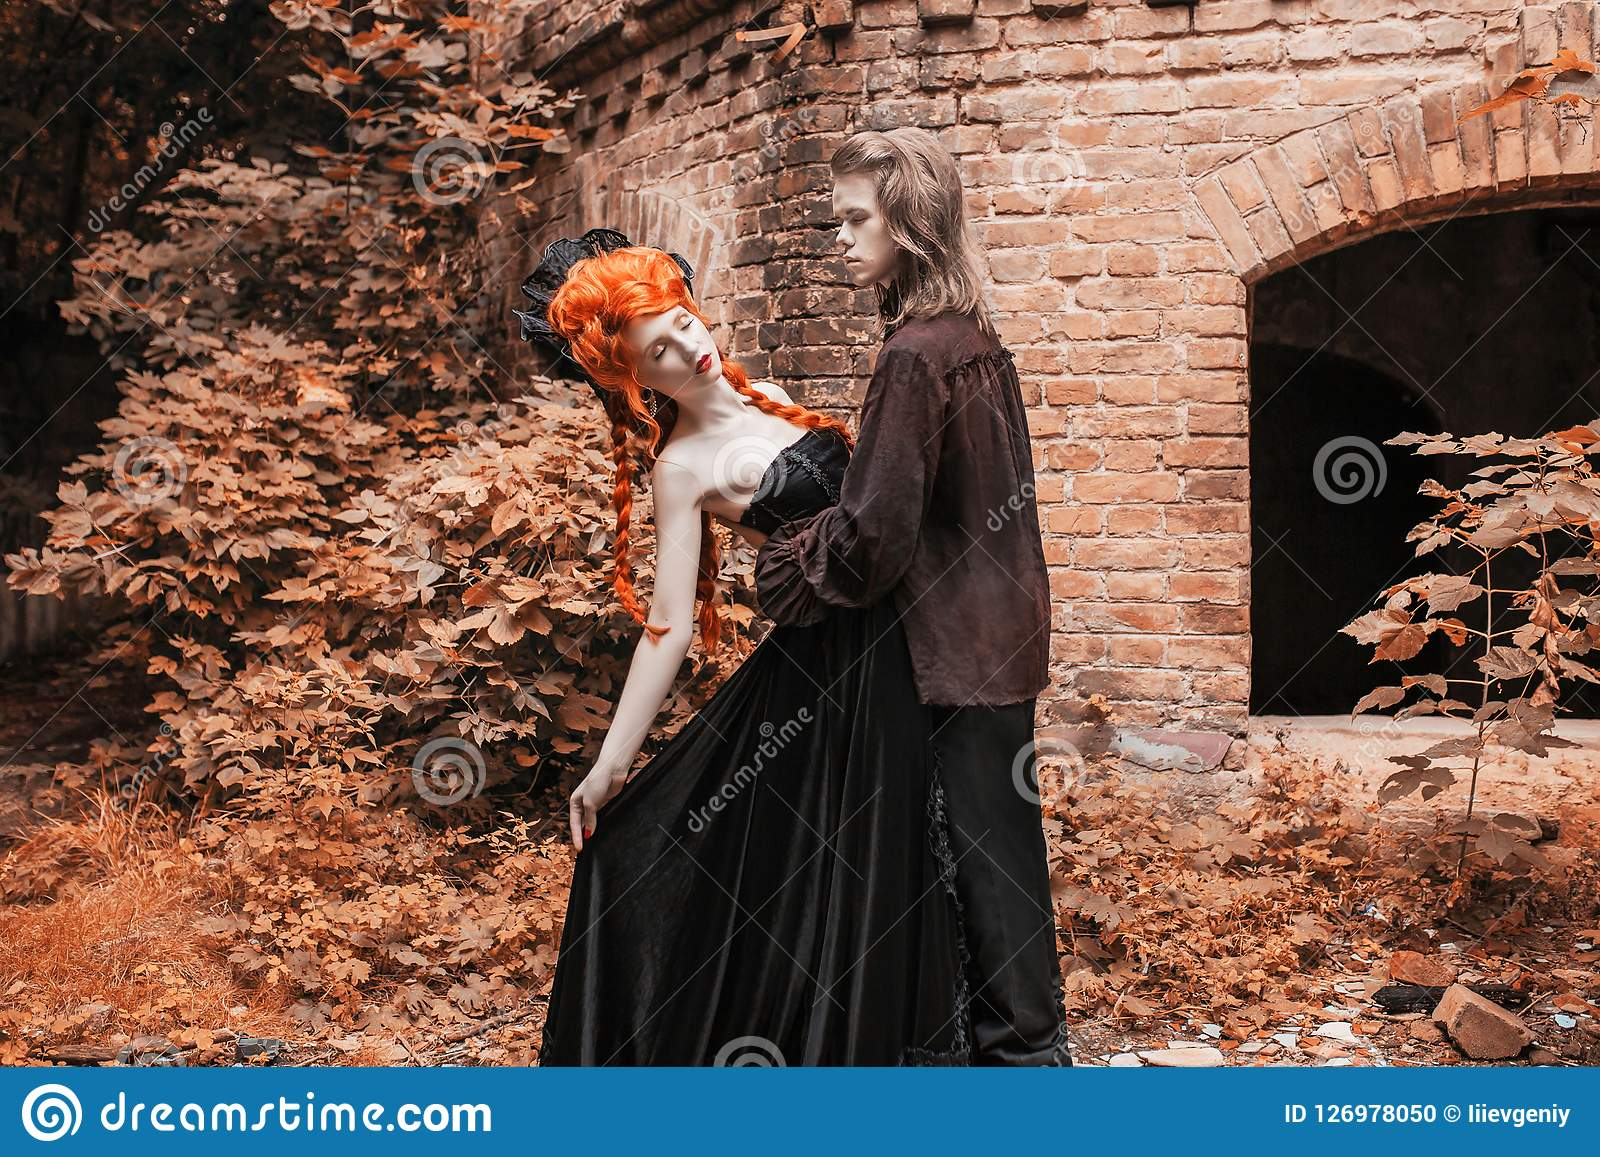 Gothic Couple In Halloween Costume Punk Vampire In Victorian